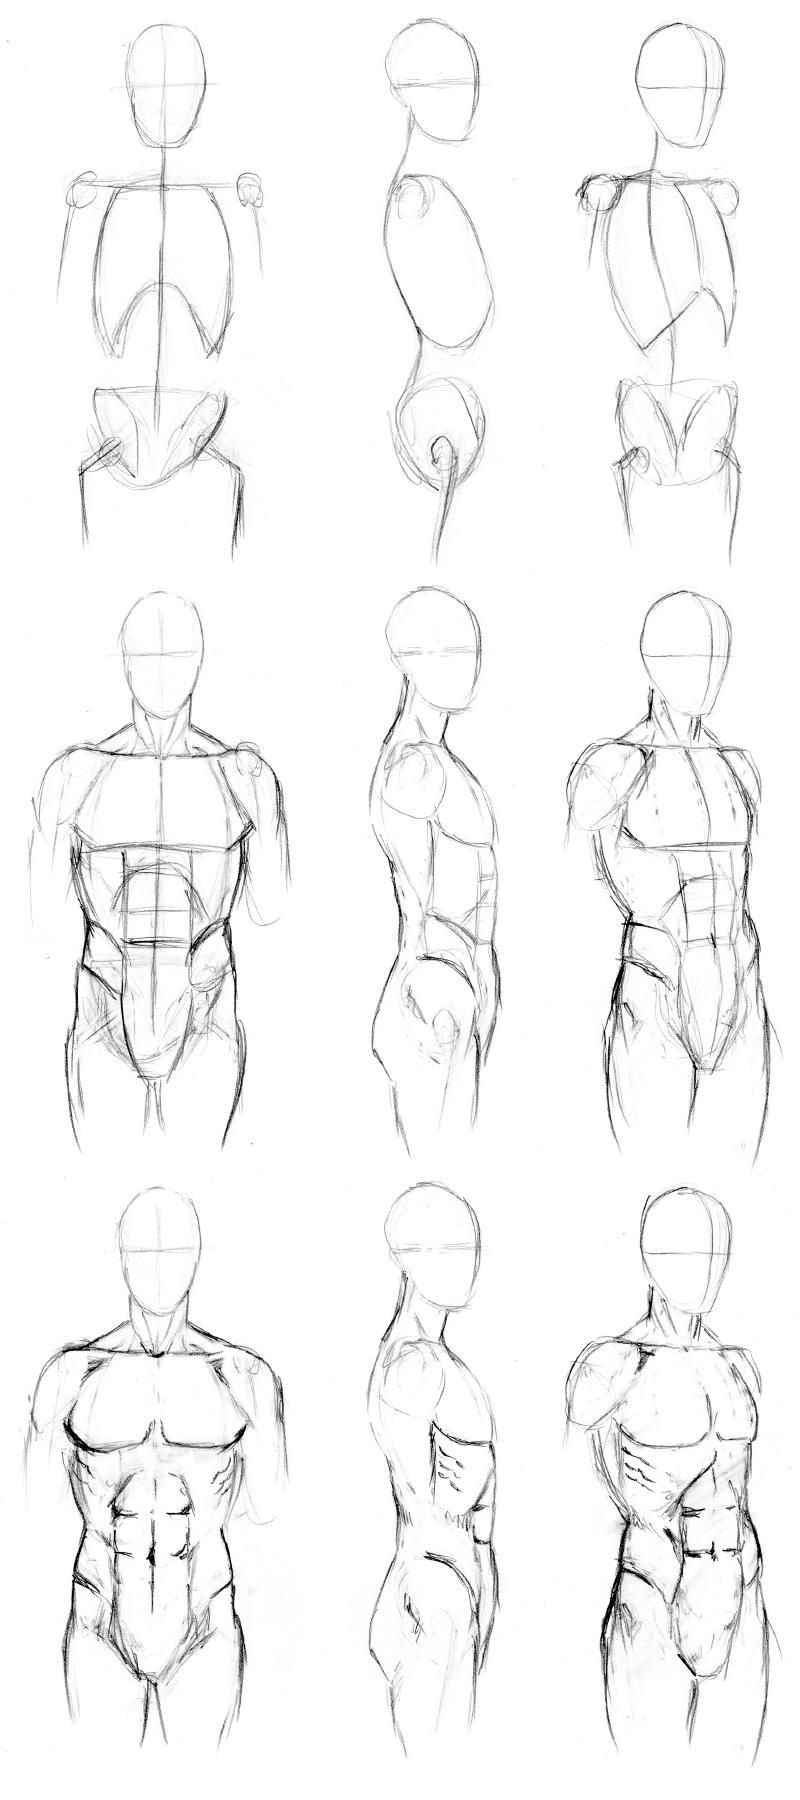 Pin by Linda Vosshage on Inspiration | Pinterest | Male torso